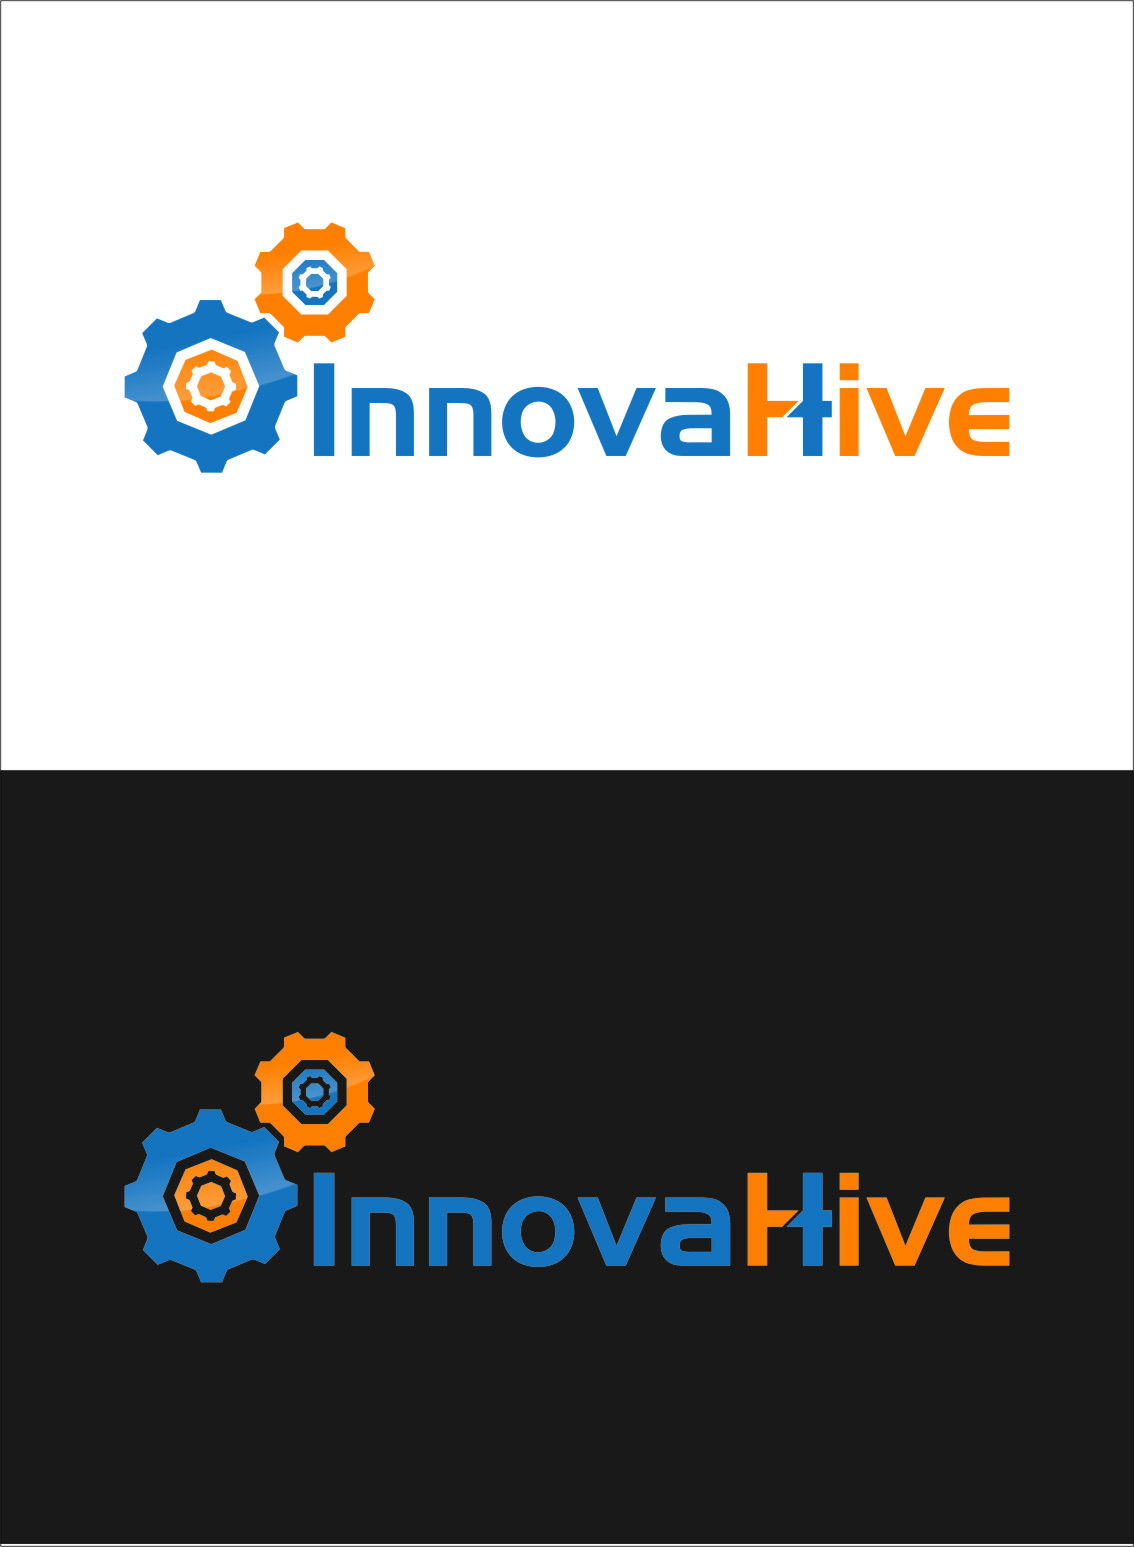 Logo Design by RasYa Muhammad Athaya - Entry No. 148 in the Logo Design Contest InnovaHive Logo Design.